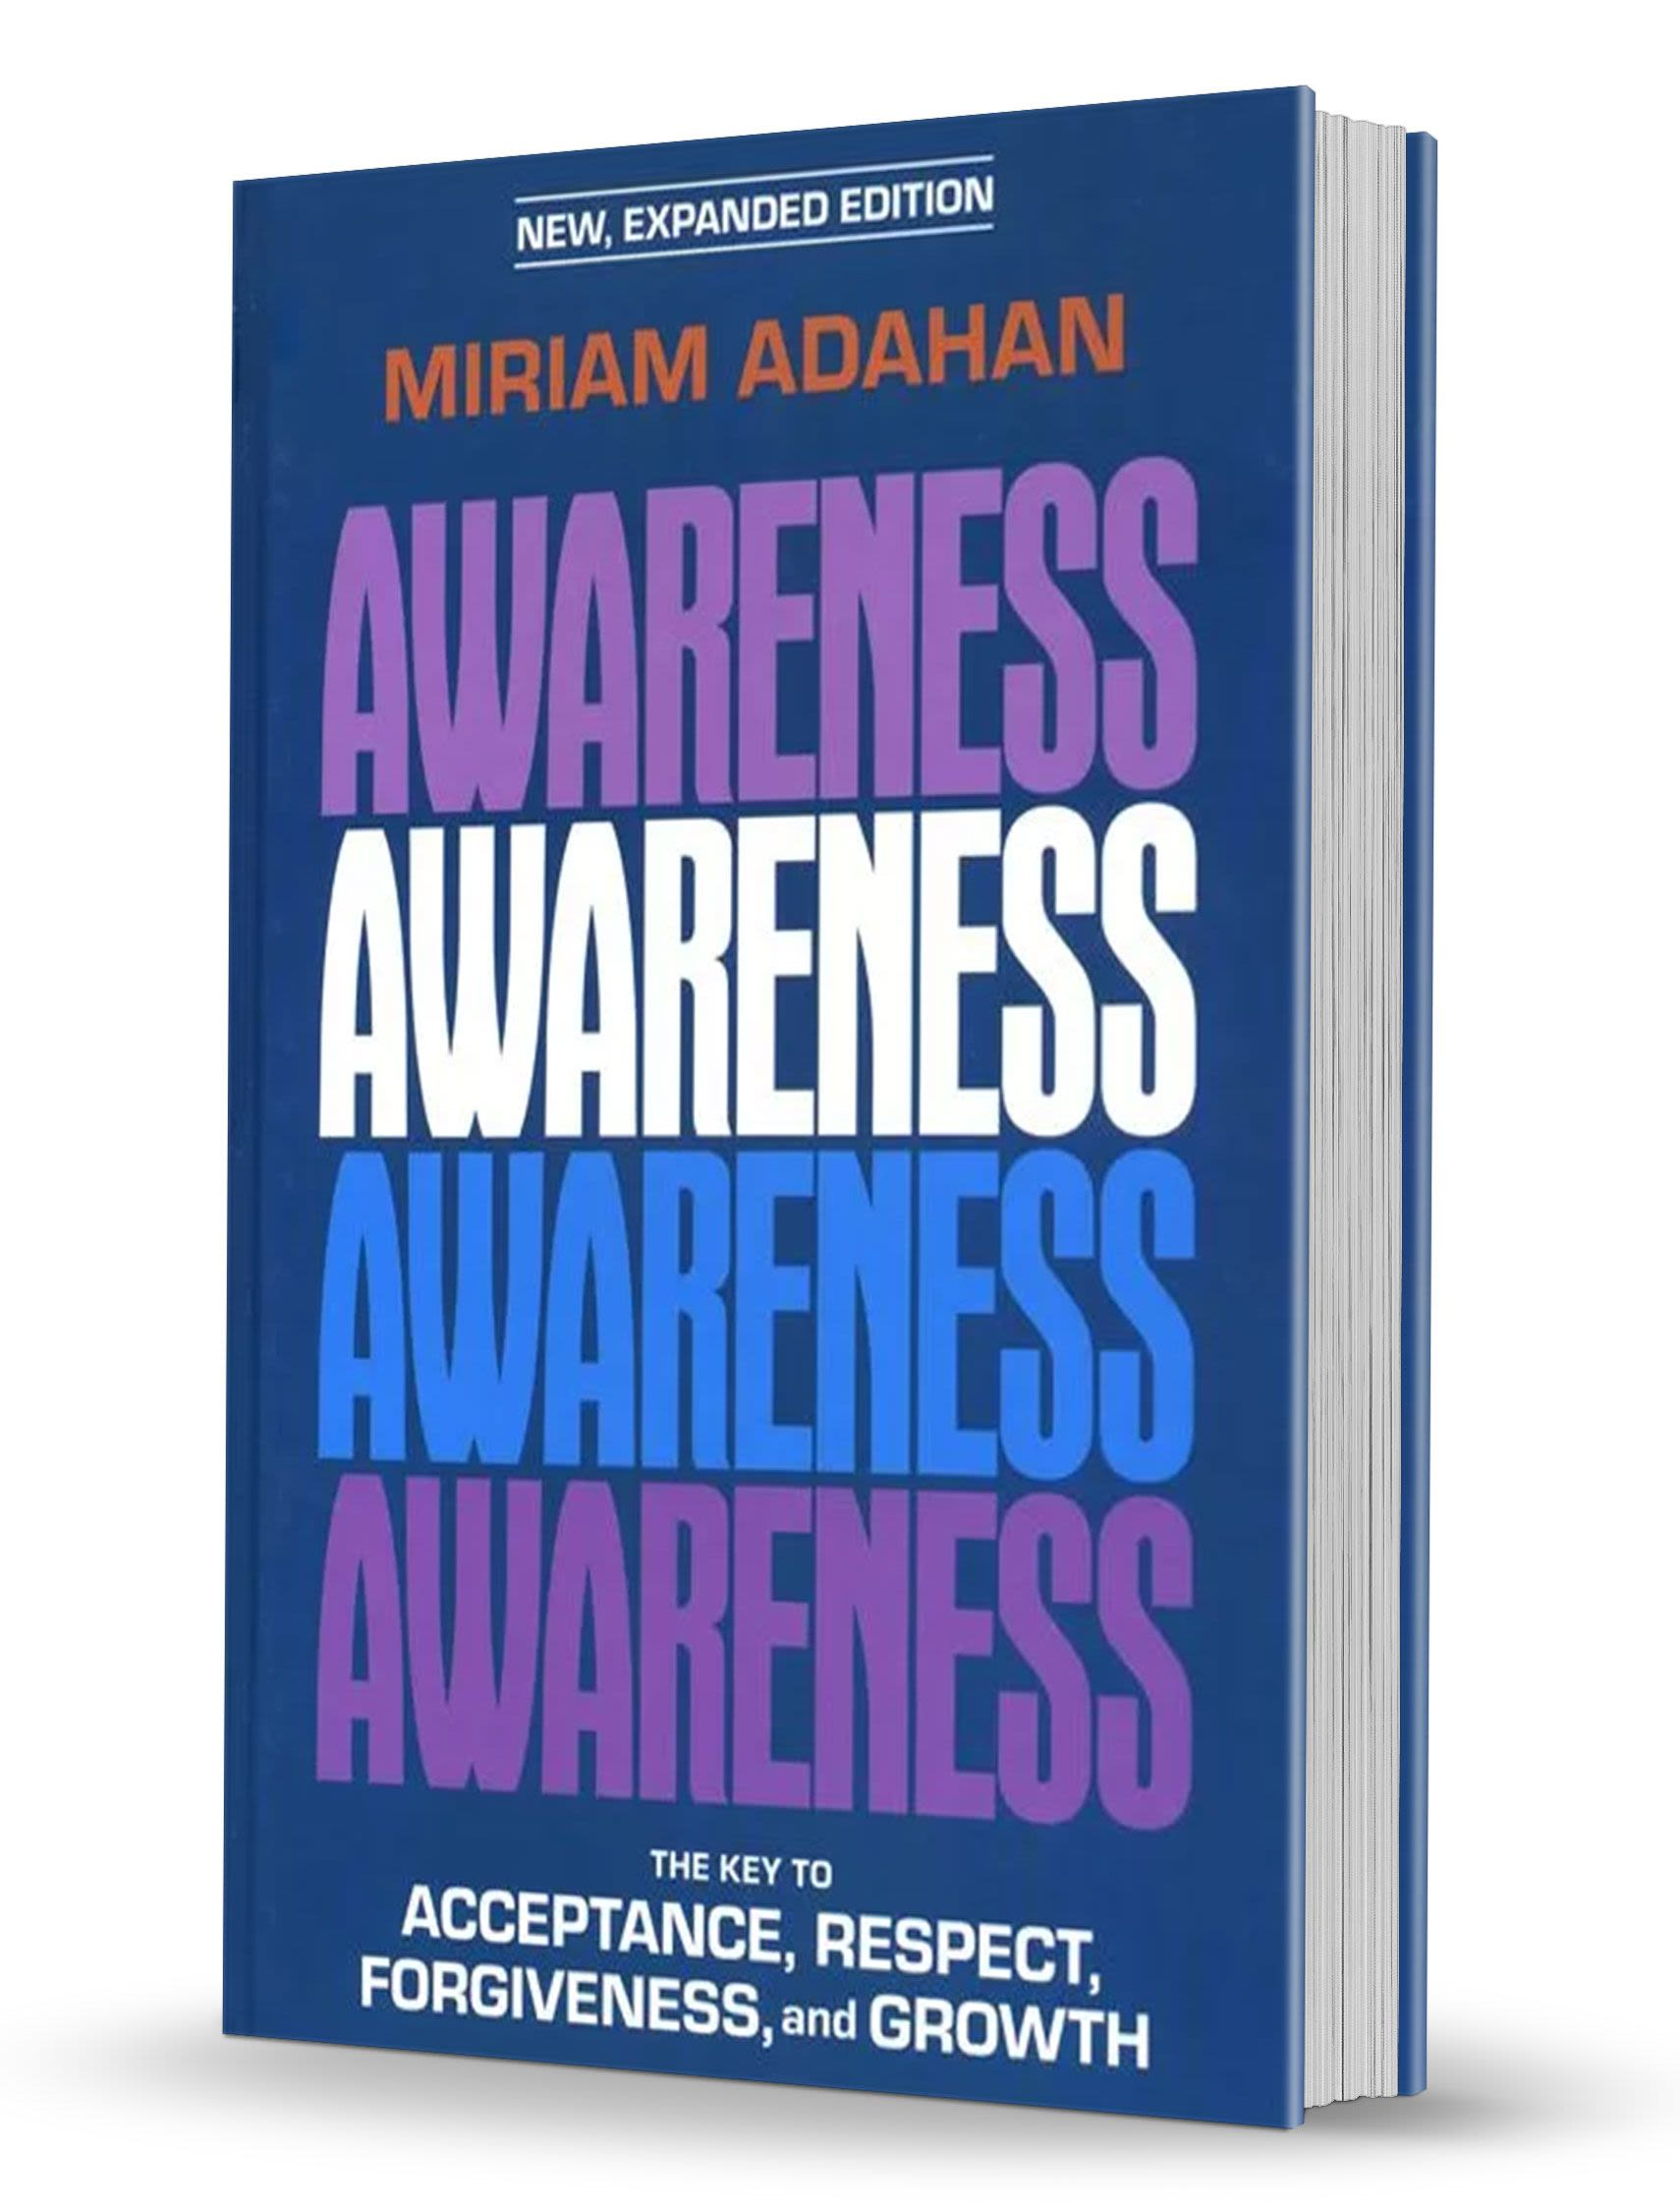 Awareness: The Key to Acceptance, Respect, Forgiveness, and Growth